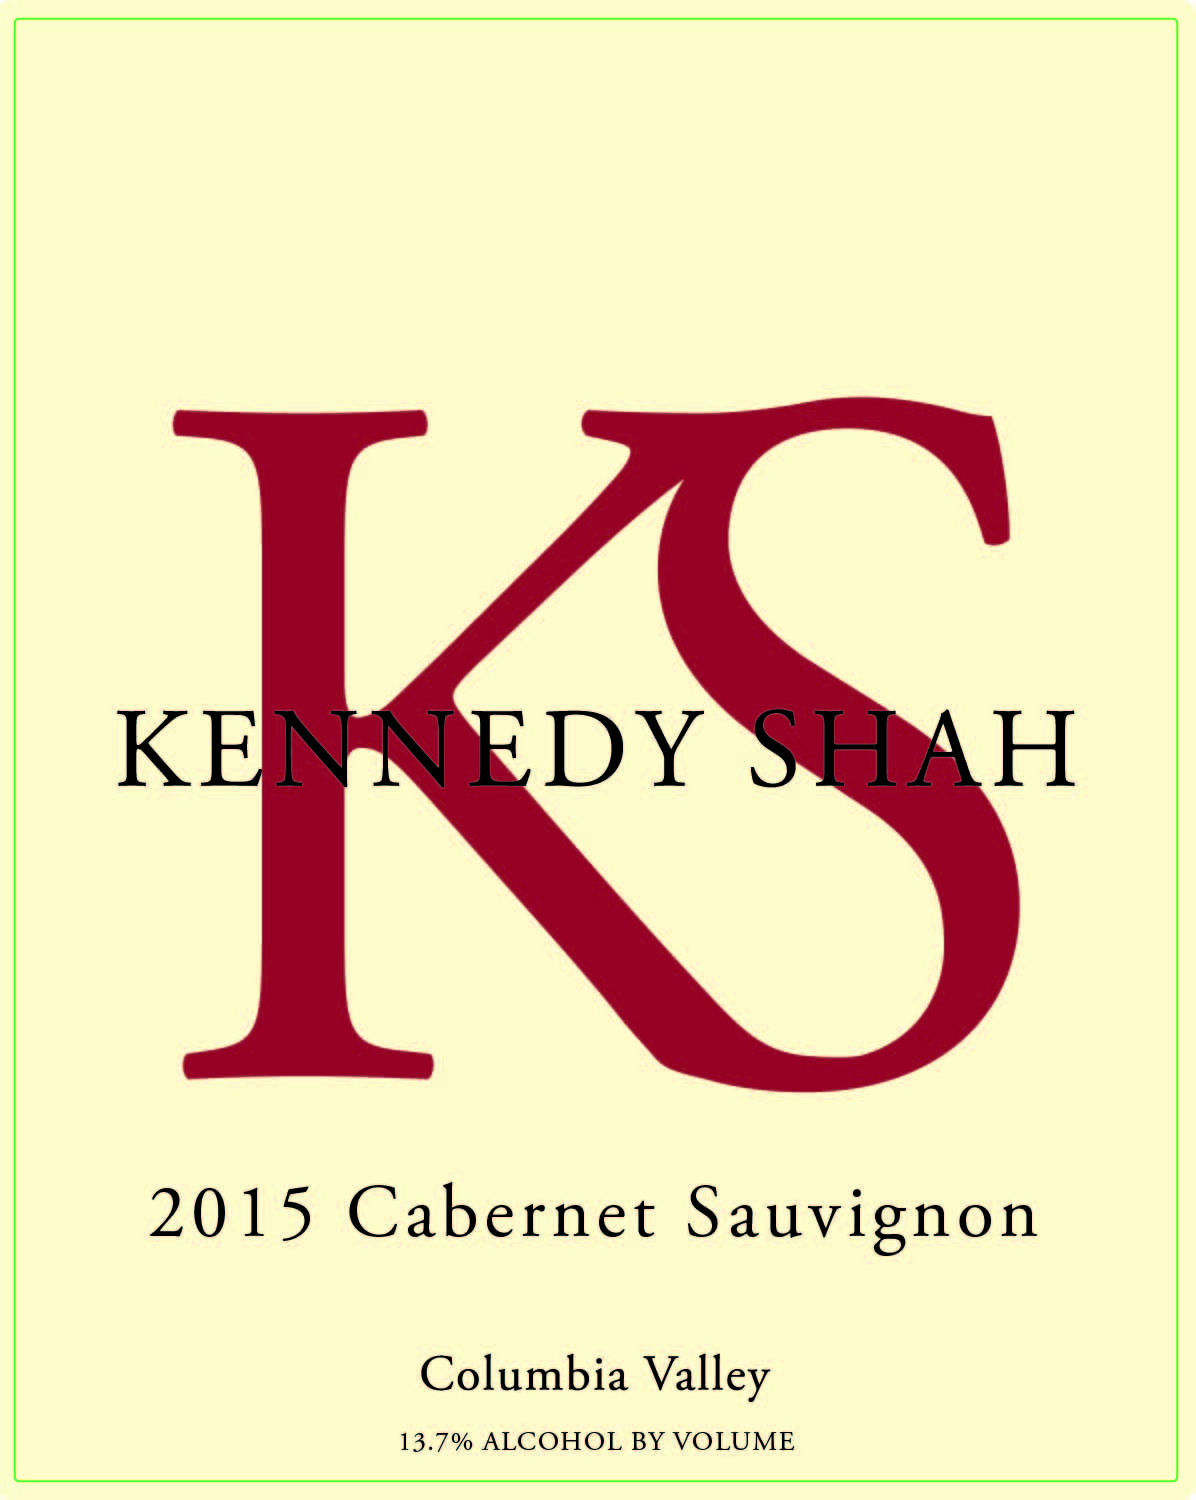 2015 Kennedy Shaw Cabernet Sauvignon Columbia Valley Ava By The Woodhouse Wine Estates Woodinville Washington Cabernet Sauvignon Cabernet Sauvignon